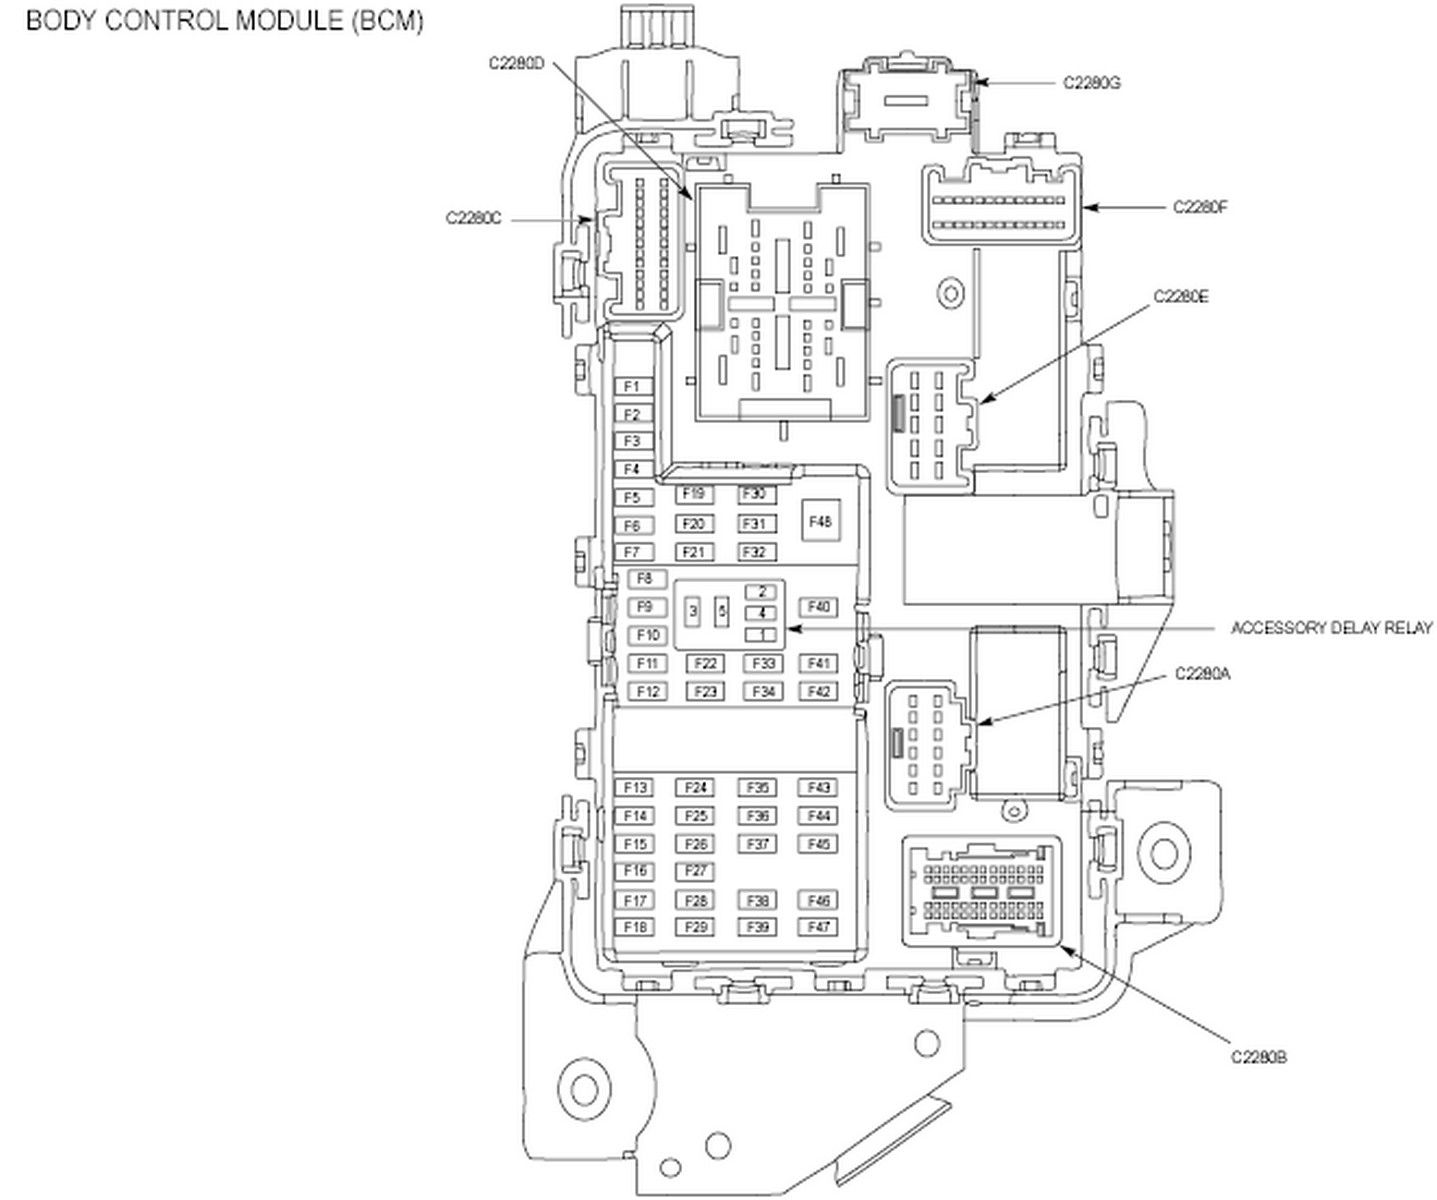 2012 Ford Body Control Module Wiring Diagram : 44 Wiring